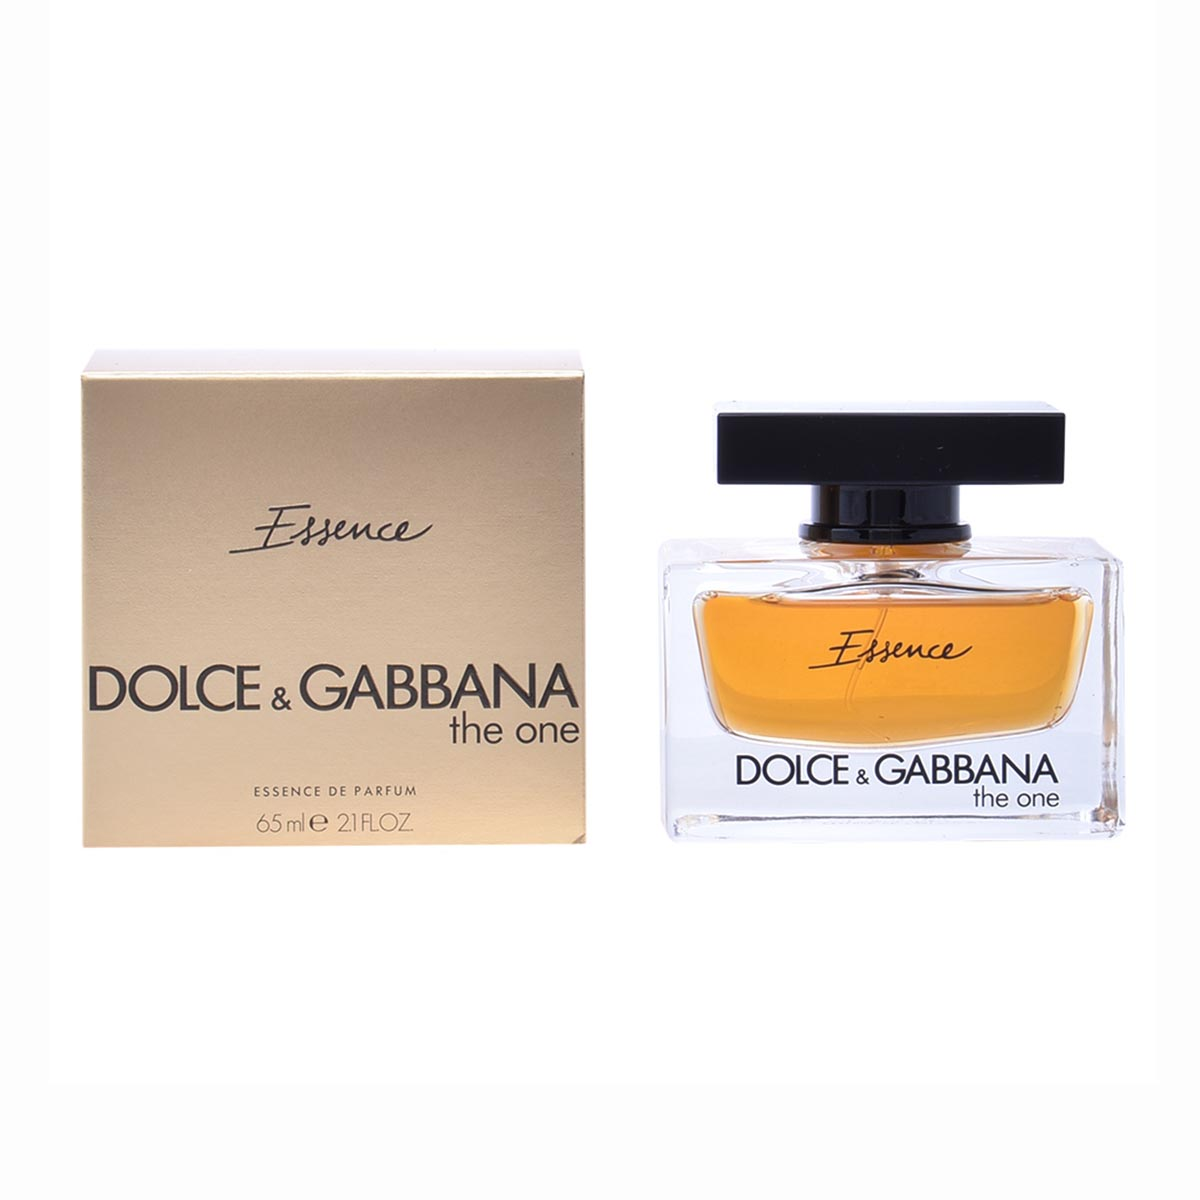 Dolce gabbana the one essence eau de parfum 65ml vaporizador